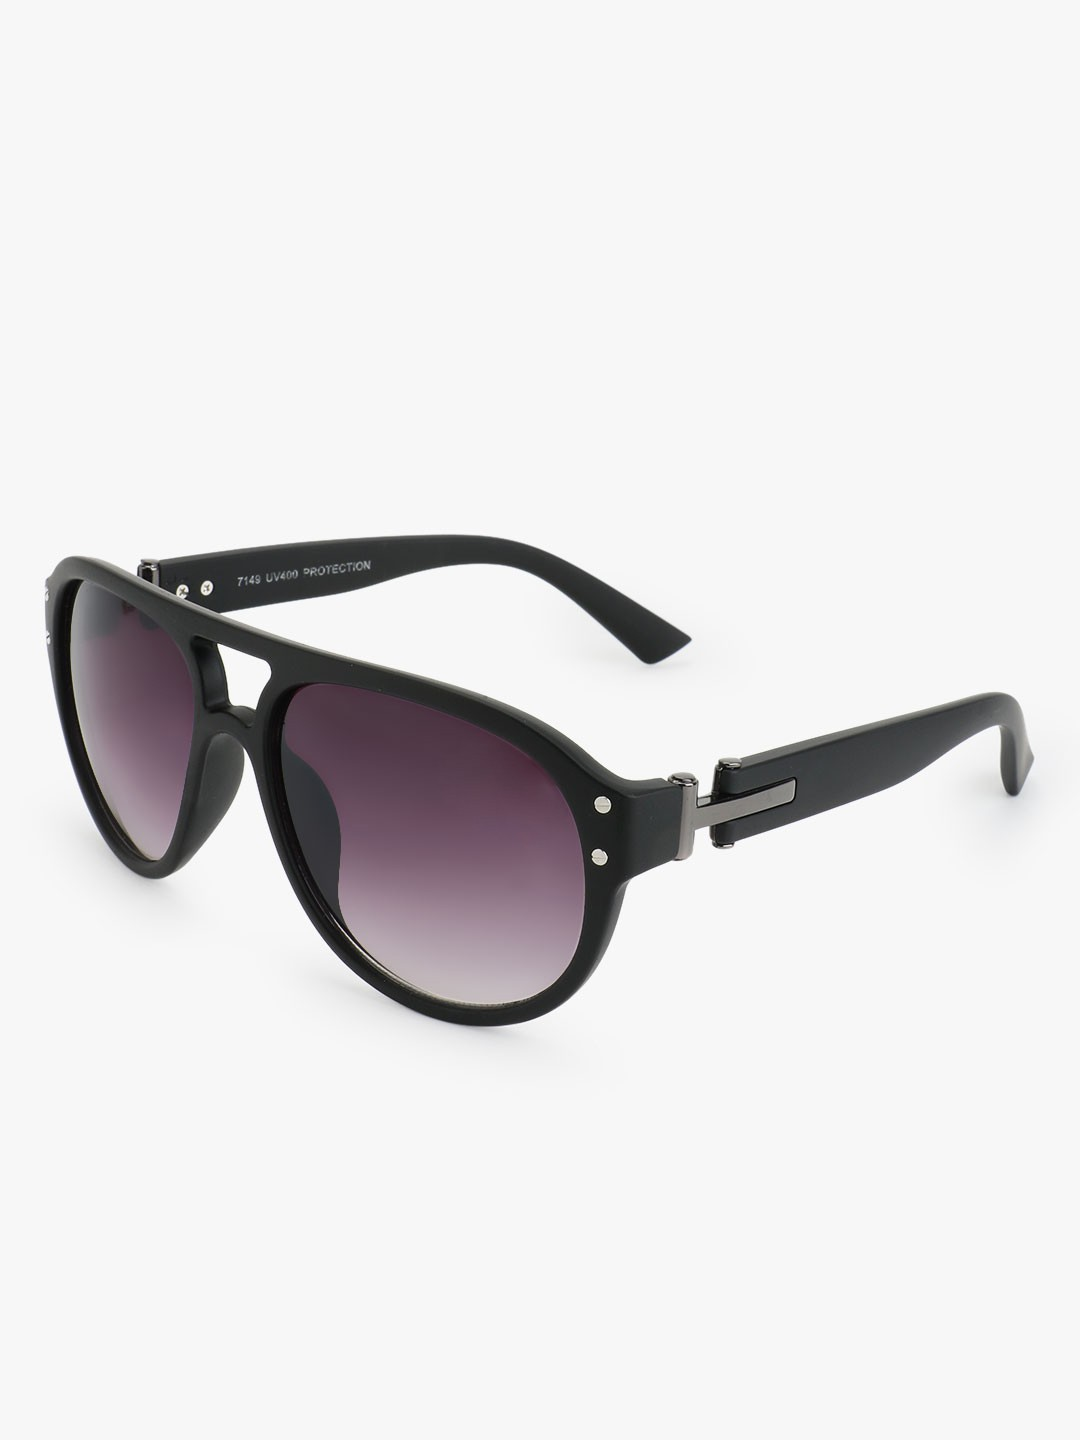 Kindred Black Double Bridge Pilot Sunglasses 1